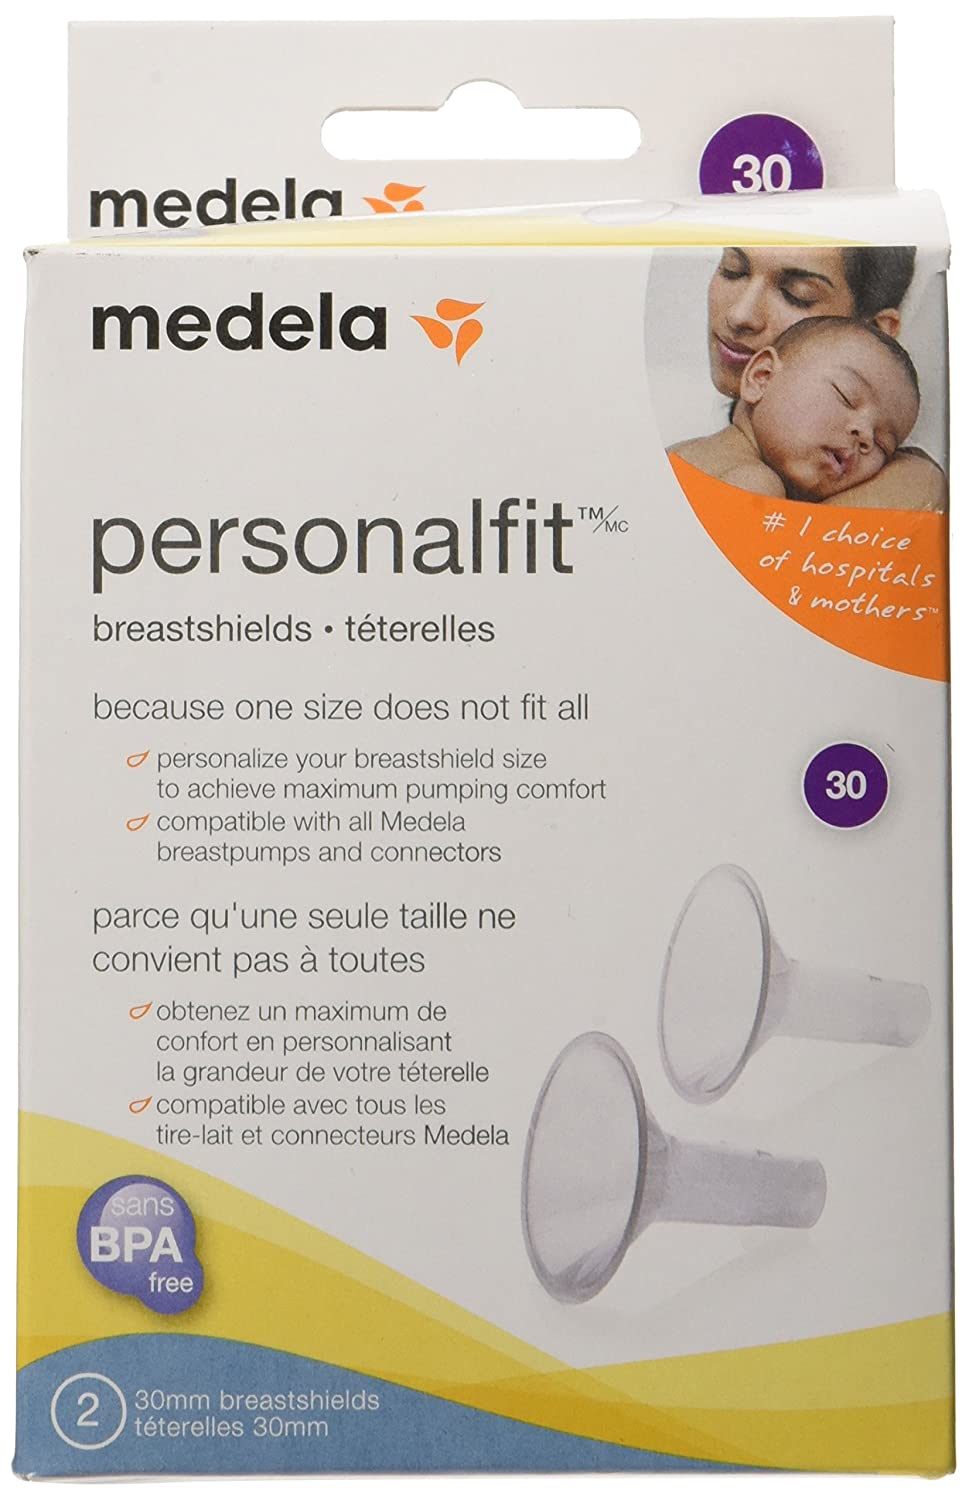 Medela PersonalFit Breast Shields - 30mm Inc. CA 27075 321.c